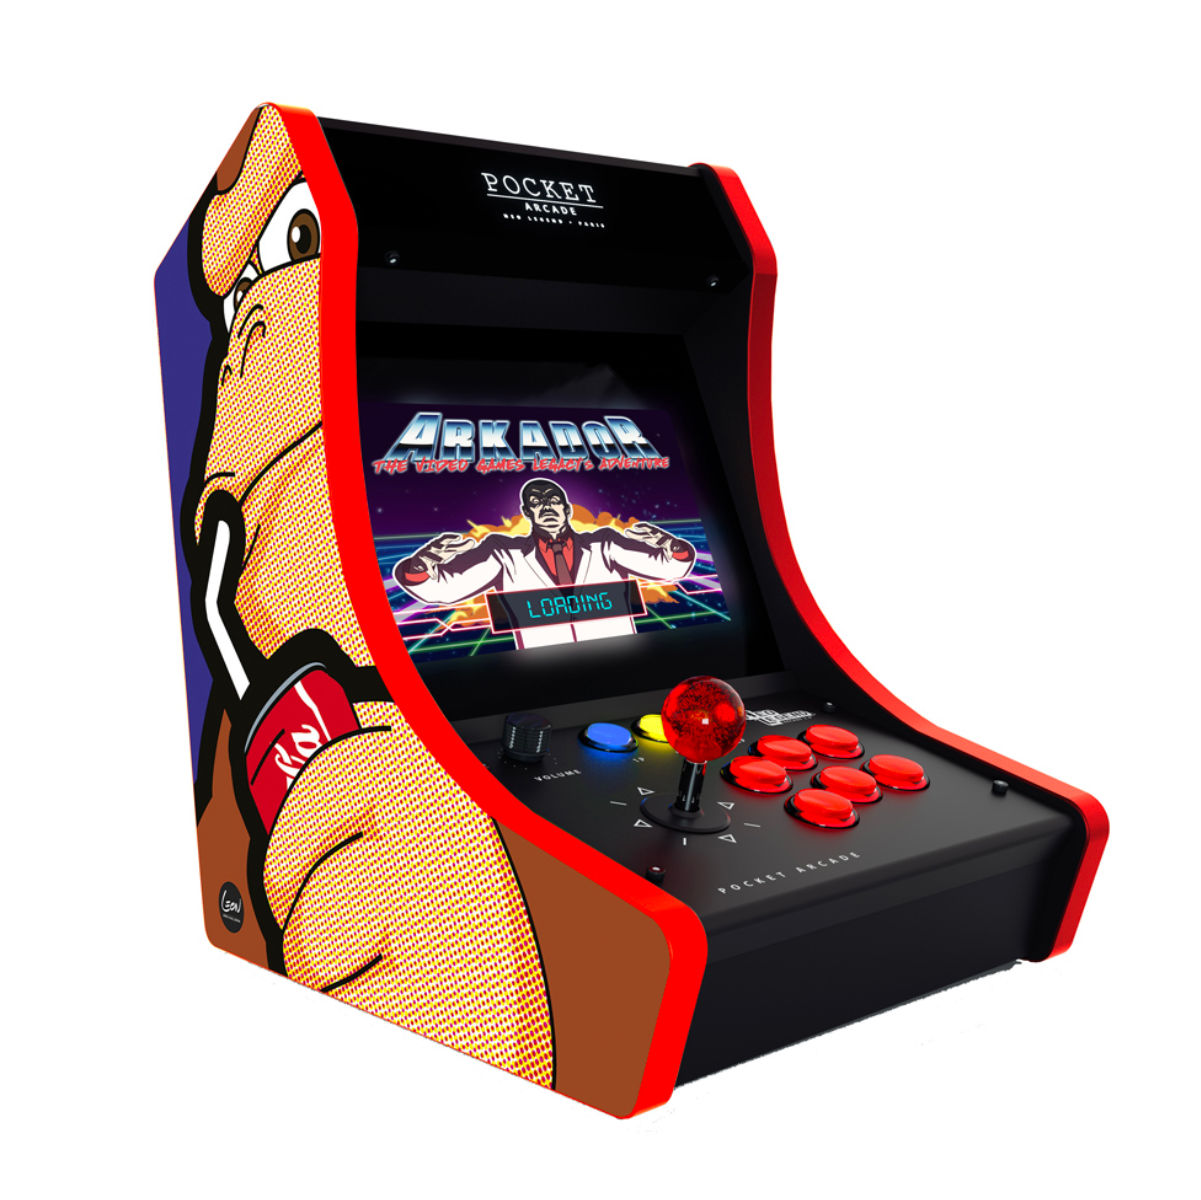 Neo Legend Pocket Arcade 2.0 Cola Kong